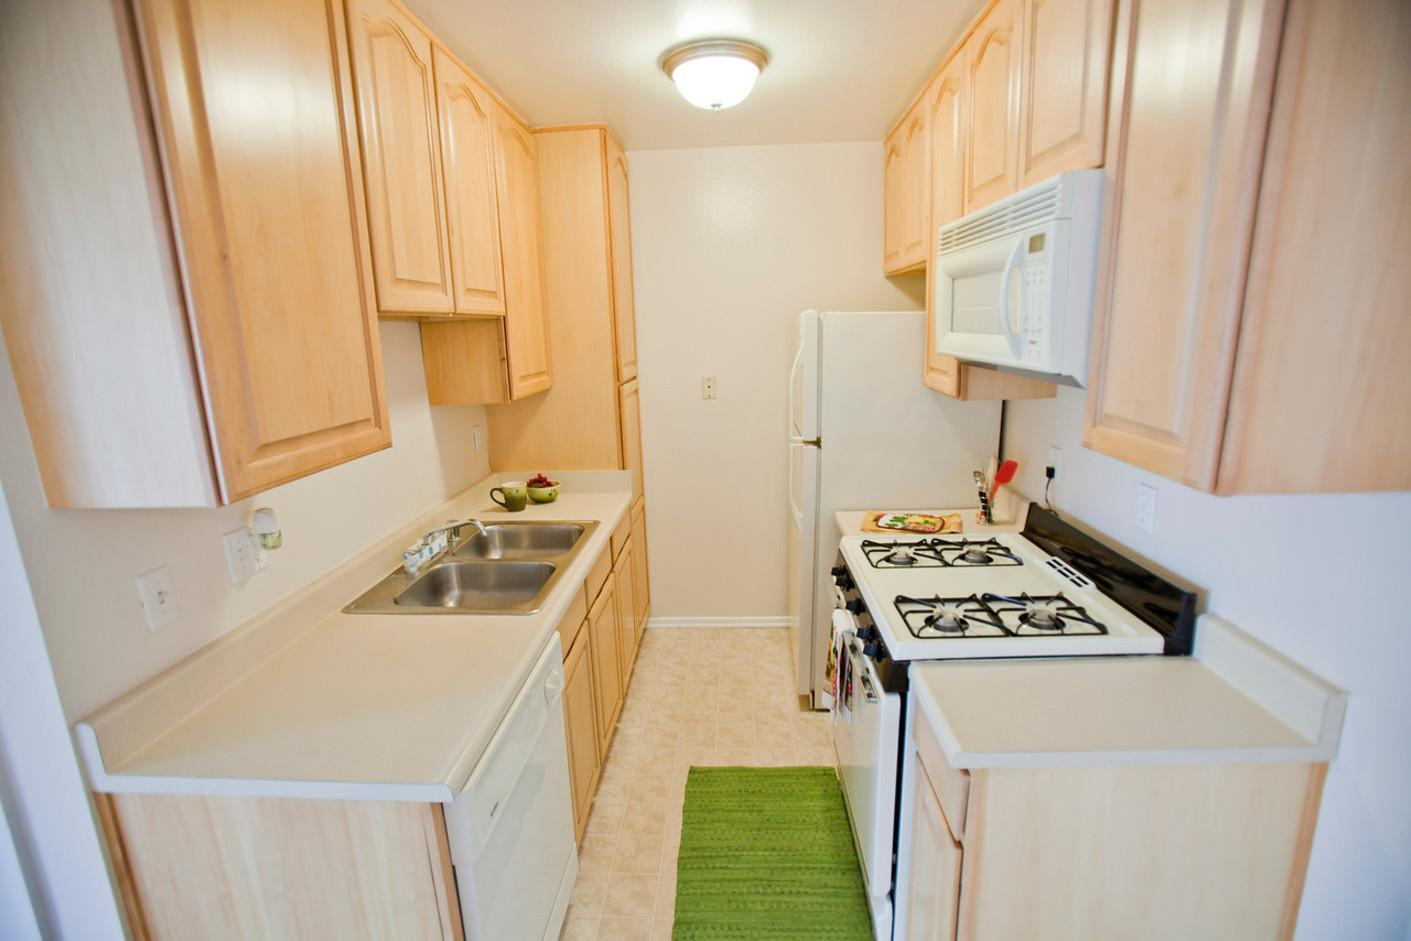 125 W Olive Ave #119, Monrovia, CA - $1,860 USD/ month